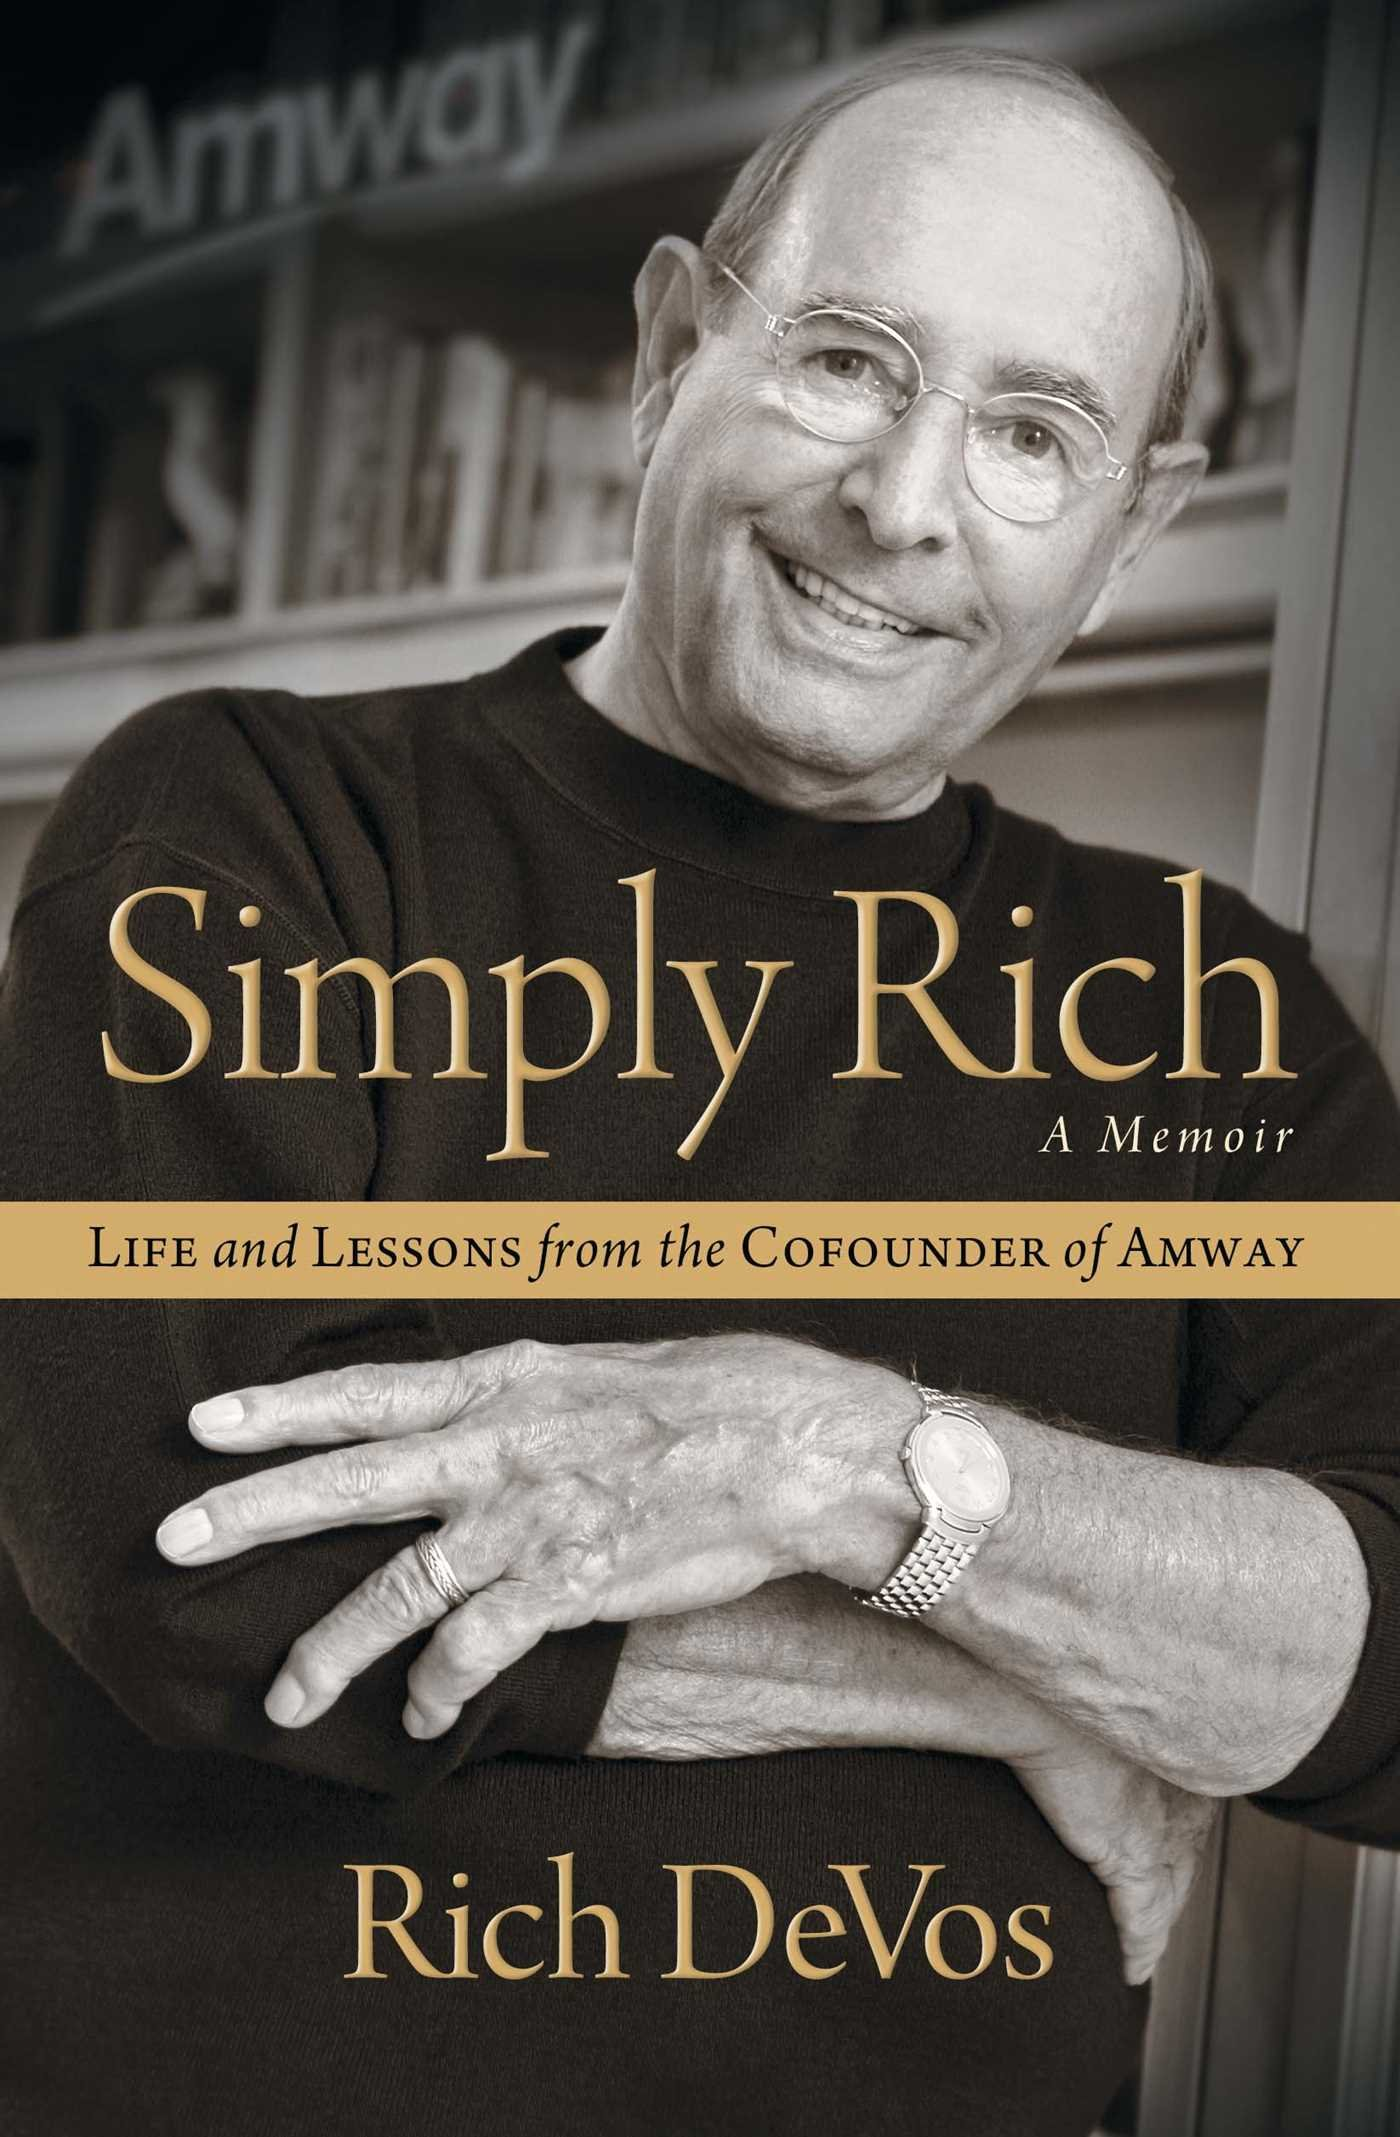 Simply Rich: Life and Lessons from the Cofounder of Amway: A Memoir: Amazon.es: Rich Devos: Libros en idiomas extranjeros